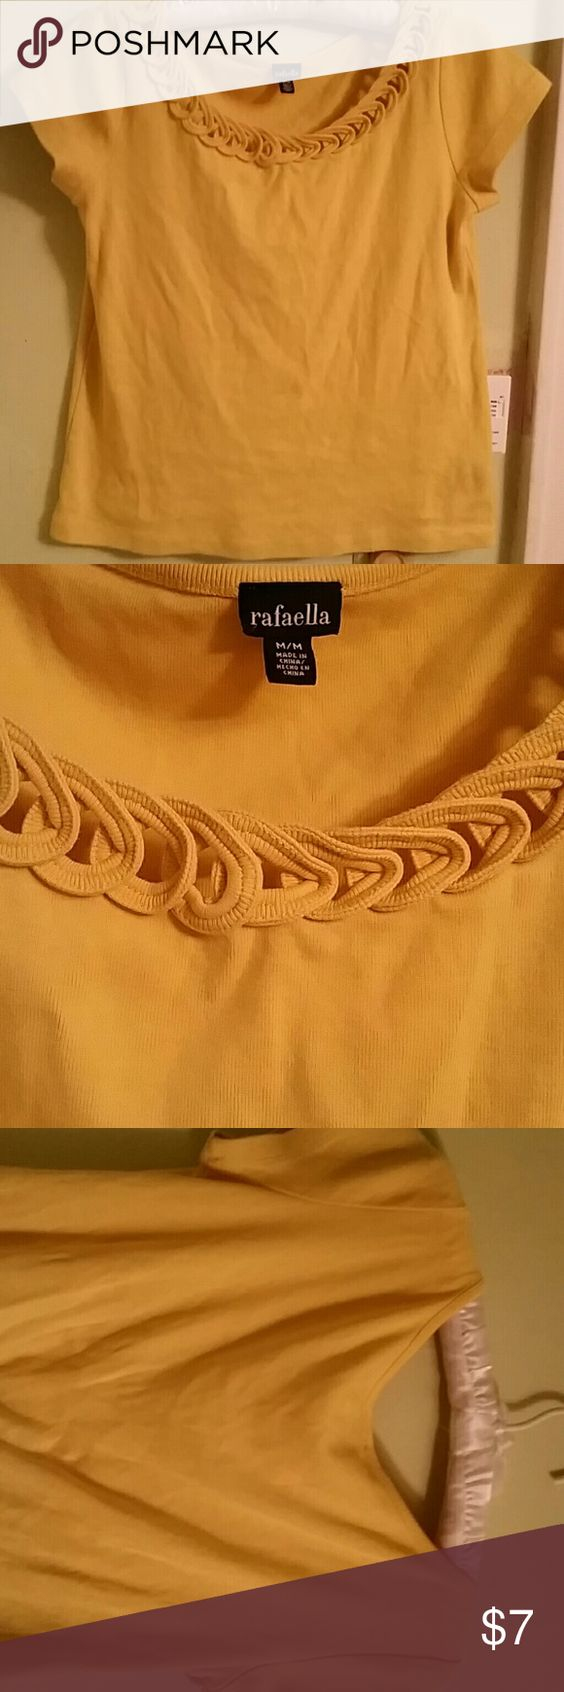 Medium short sleeve shirt with color design Mustard yellow rings around the neck kind of design Tops